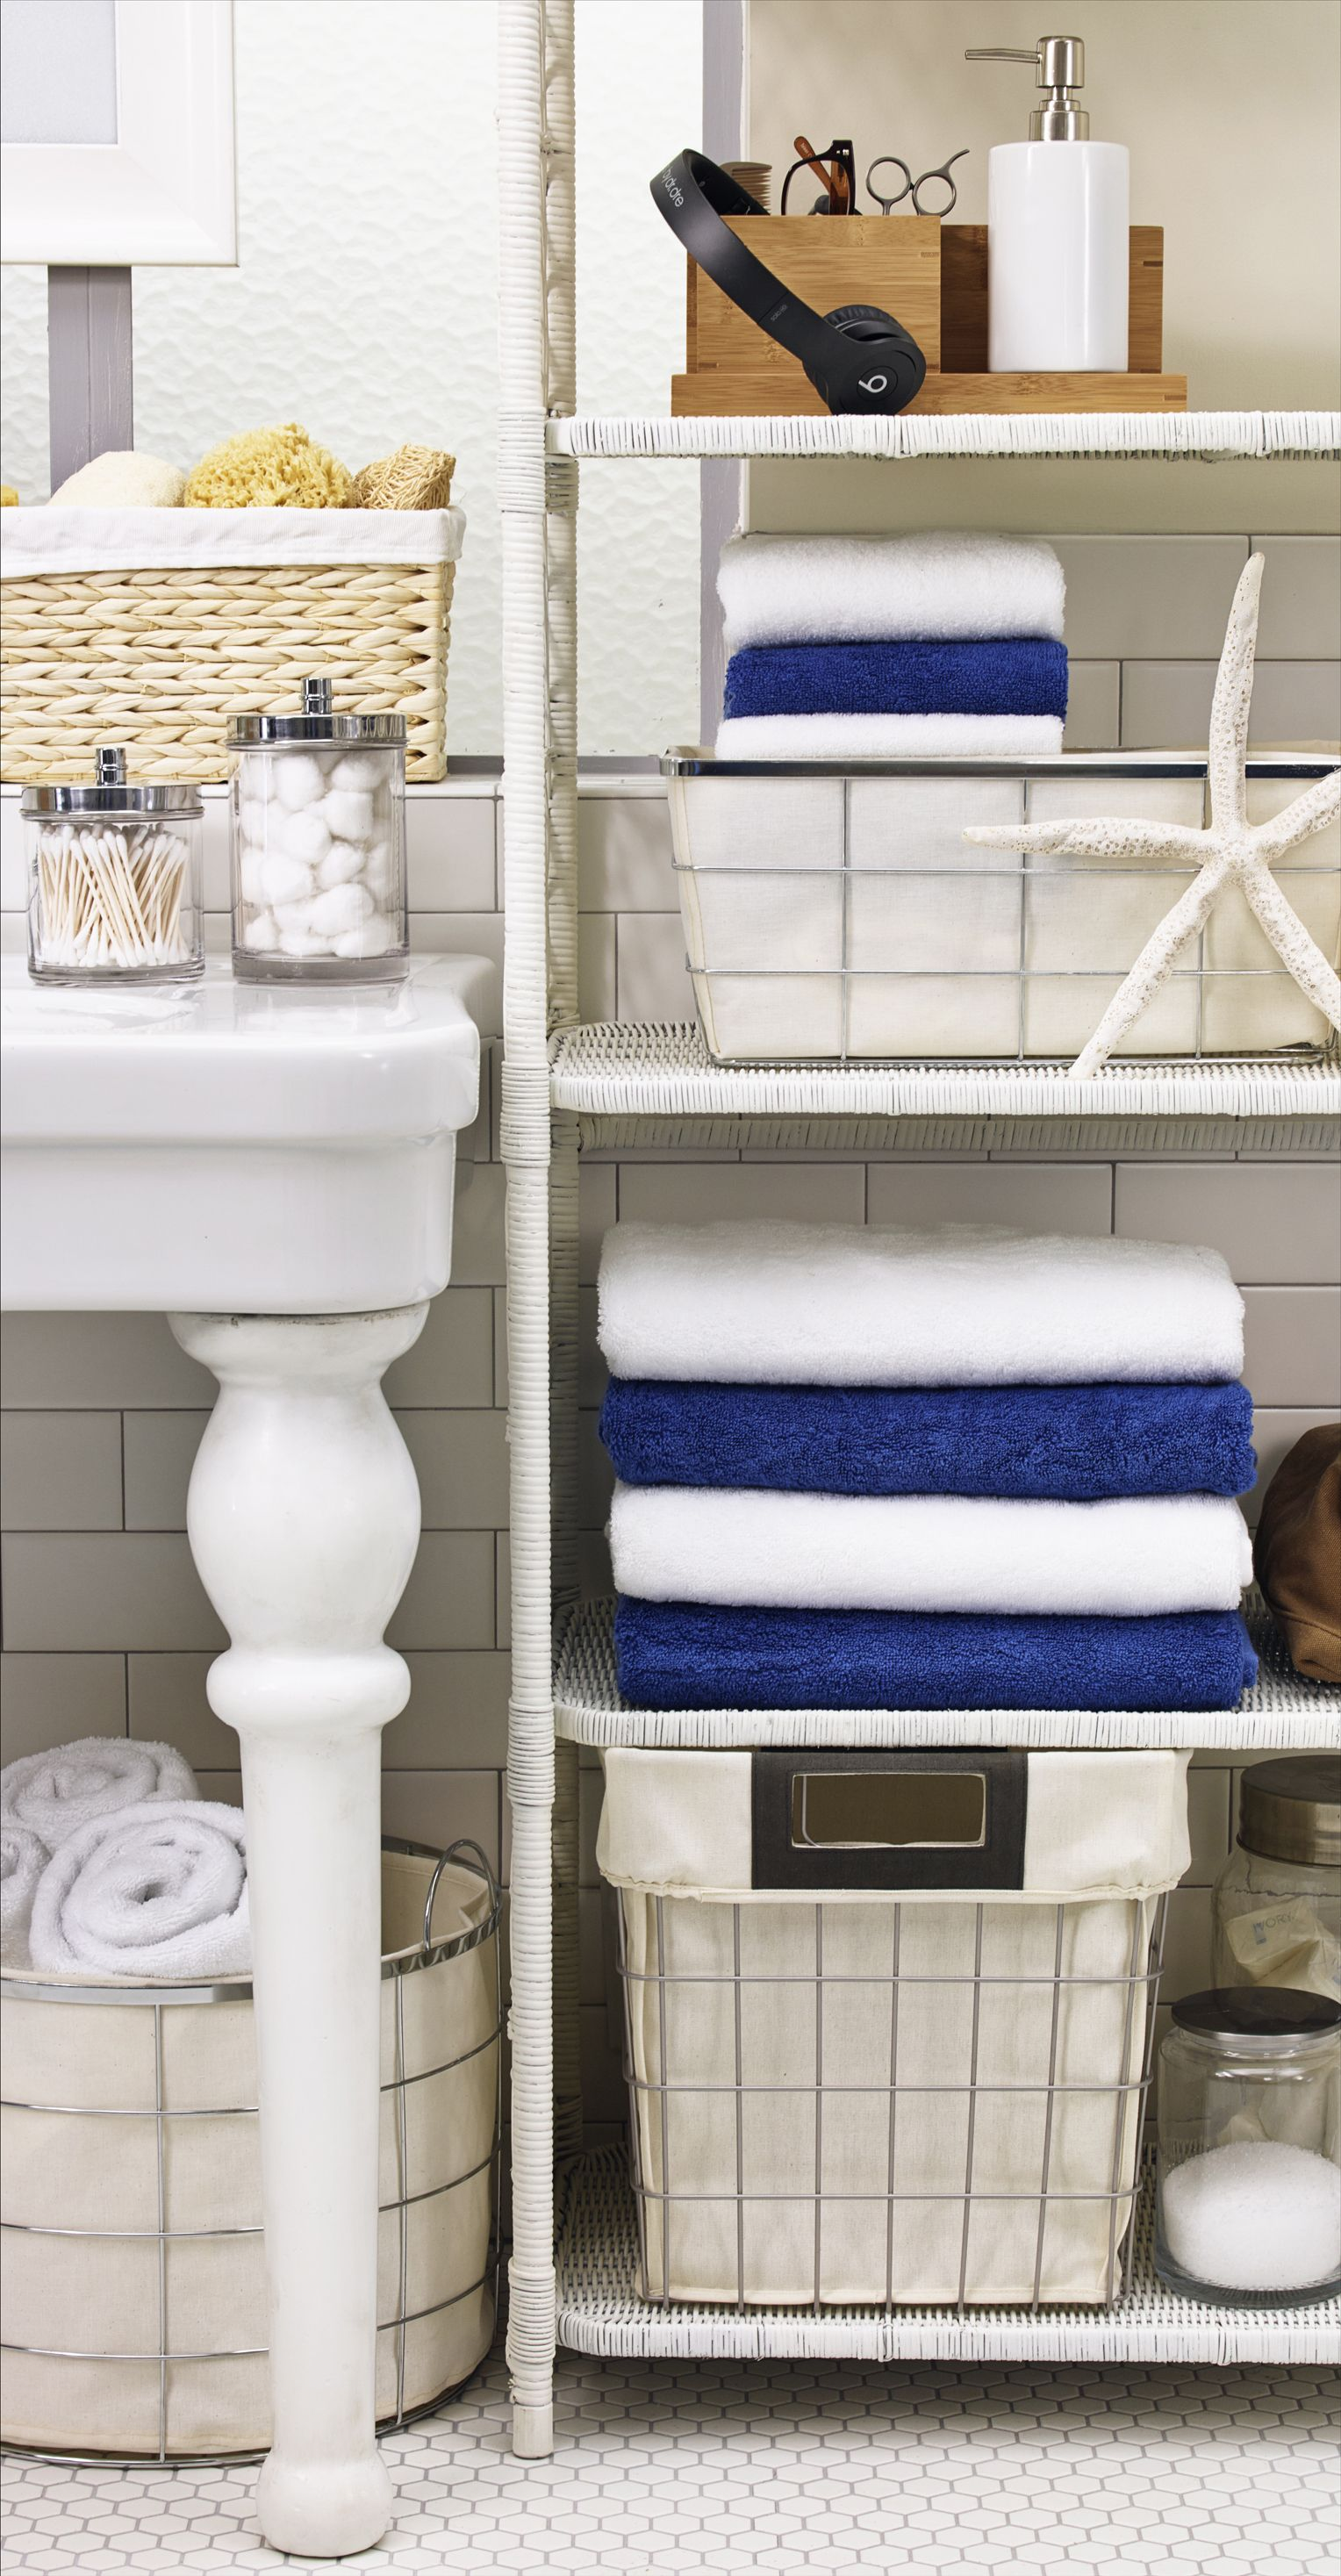 Bathroom Essentials Cut The Time It Takes To Get Ready In Half By Keeping Your